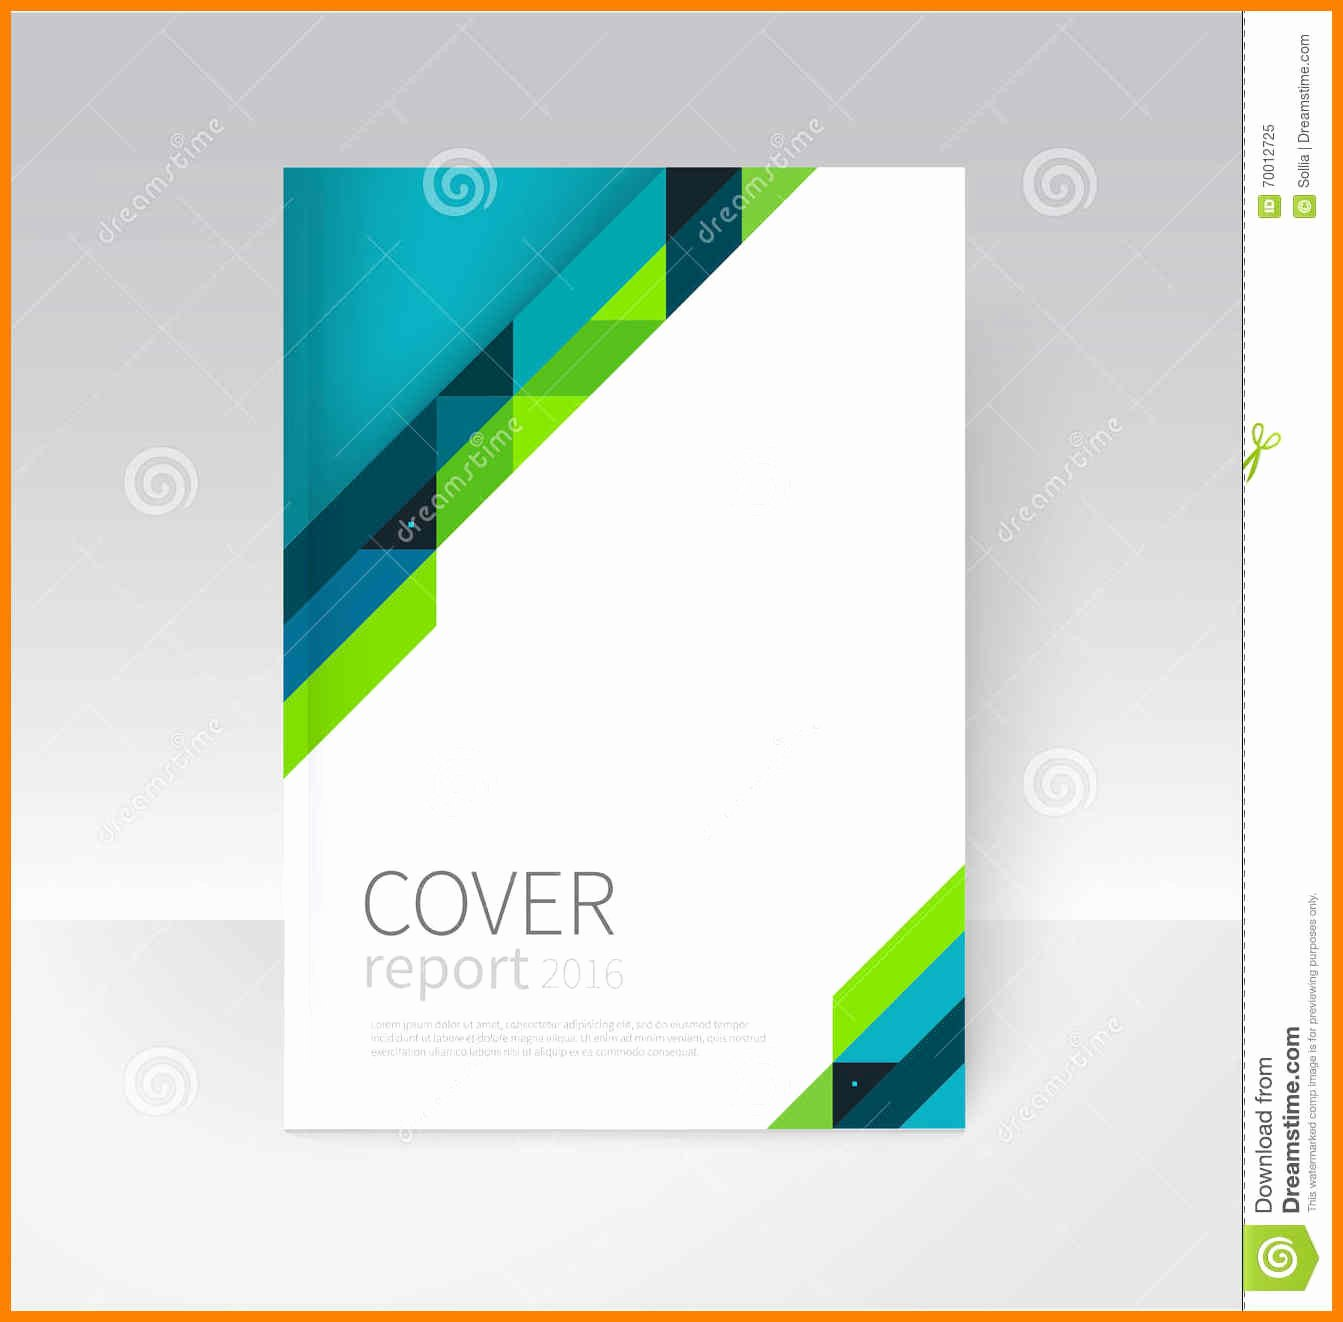 Ms Word Cover Page Templates Free Downloadochure Flyer